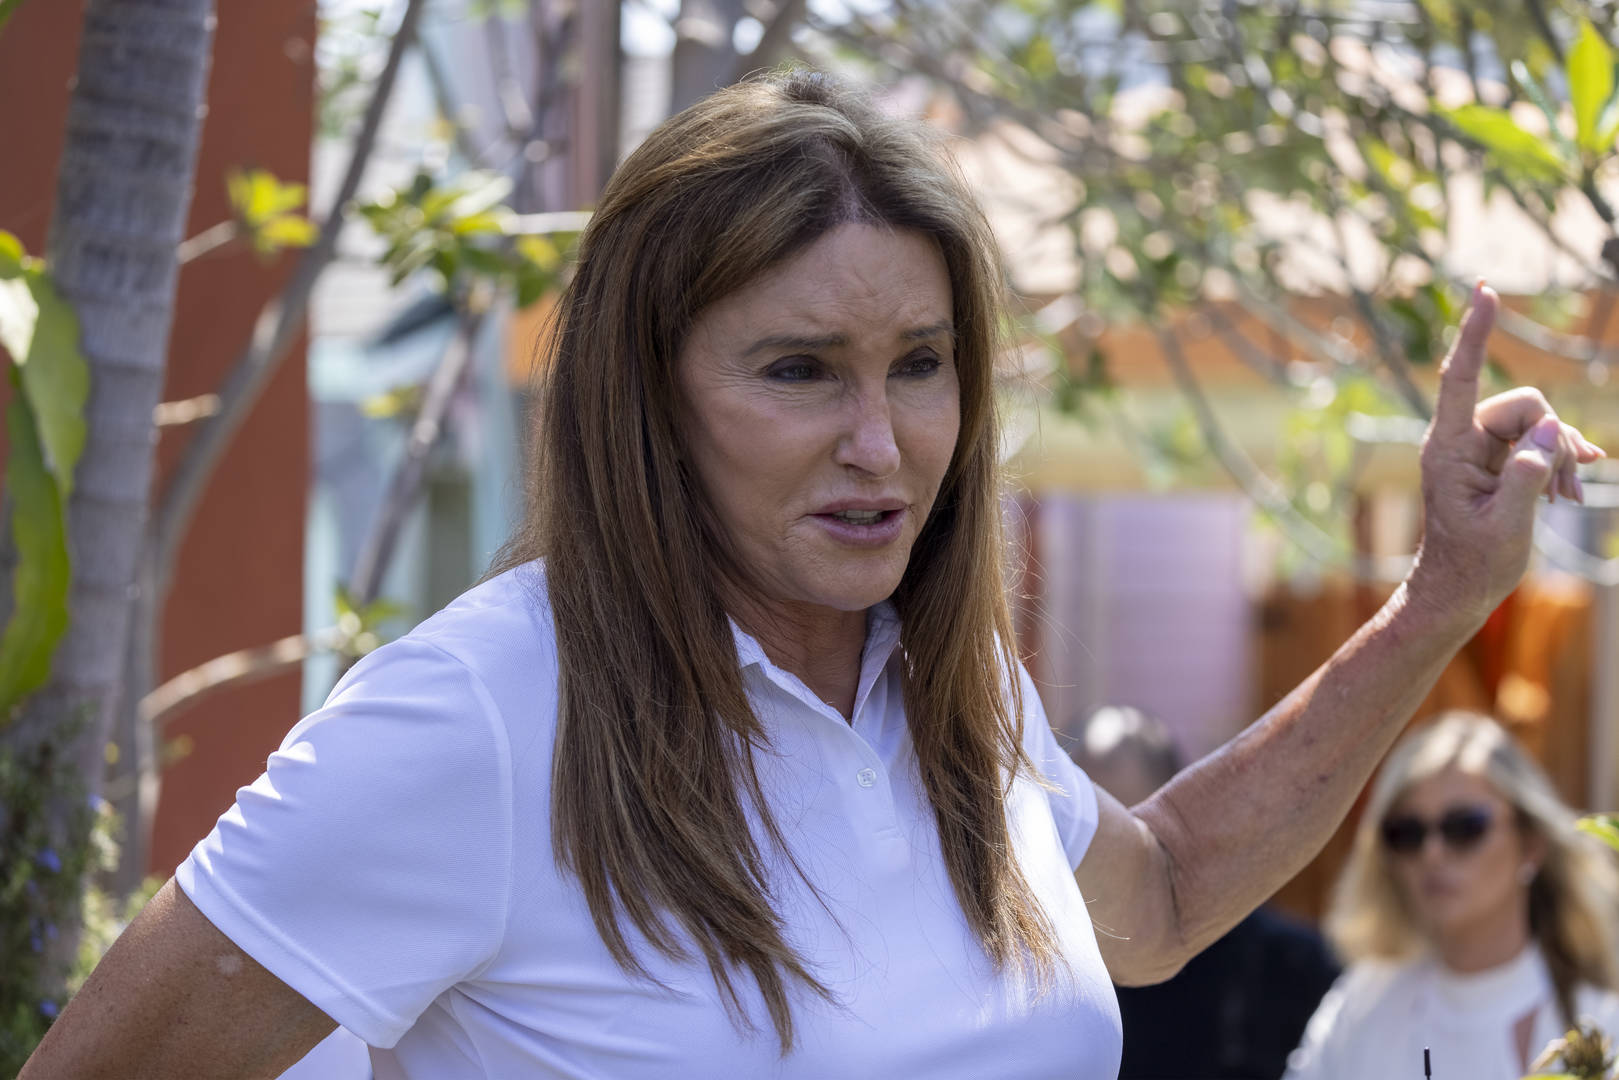 Gubernatorial candidate Caitlyn Jenner talks to reporters about homeless issues as she campaigns to overthrow California Gov. Gavin Newsom in an upcoming special recall election on August 12, 2021 in Venice, California. A well-funded campaign collected the needed 2 million pro-recall signatures that triggered the special election to be held on September 14, ahead of the regularly scheduled 2022 general election.